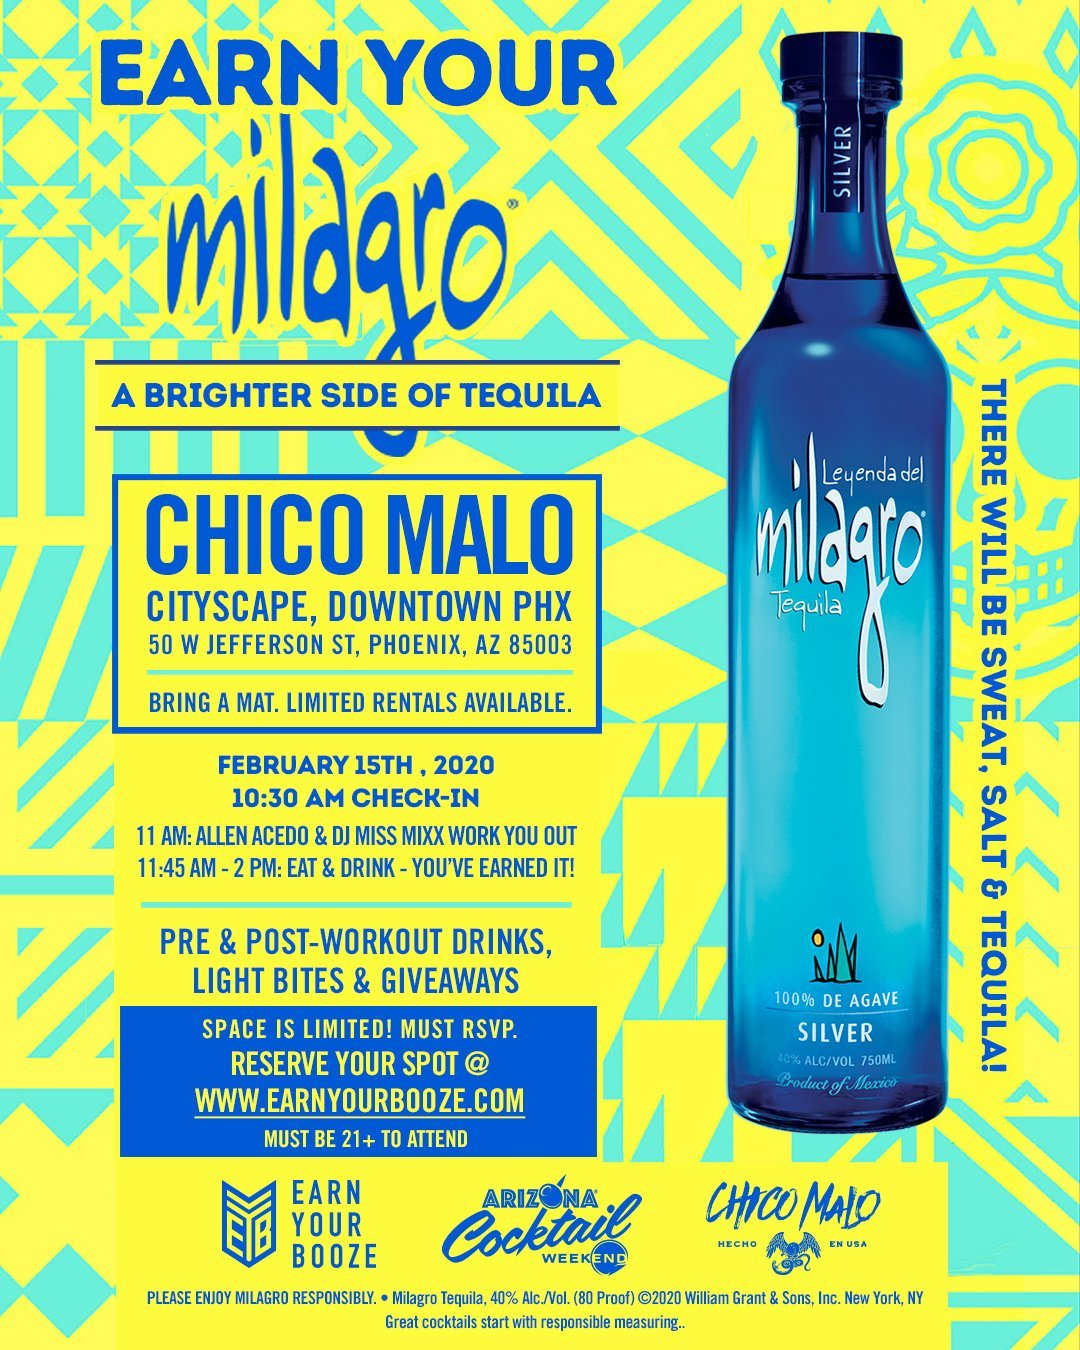 Earn Your Milagro Tequila! FEB 15, 2020Earn Your Booze